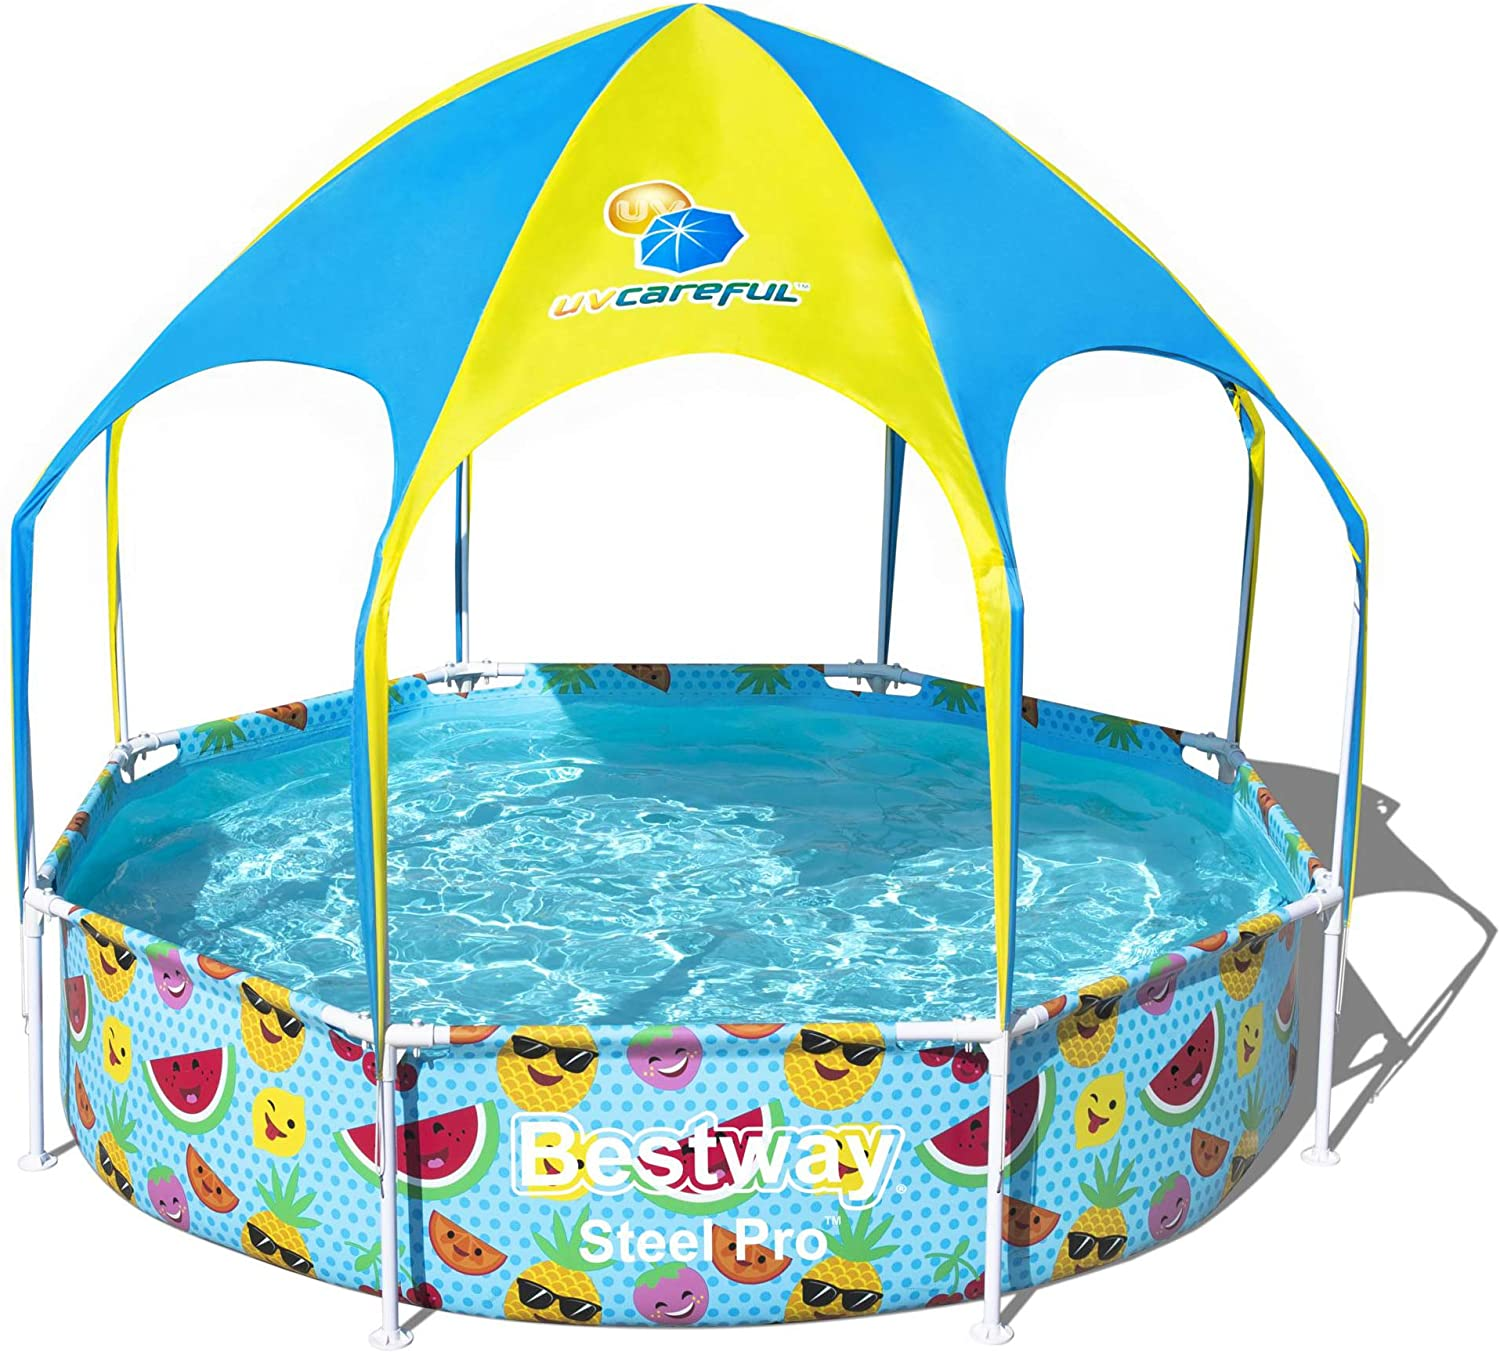 Bestway Steel Pro UV Careful - Piscina con Marco de Acero sin Bomba con Techo Protector Solar Splash-in-Shade 244 x 51 cm: Amazon.es: Jardín